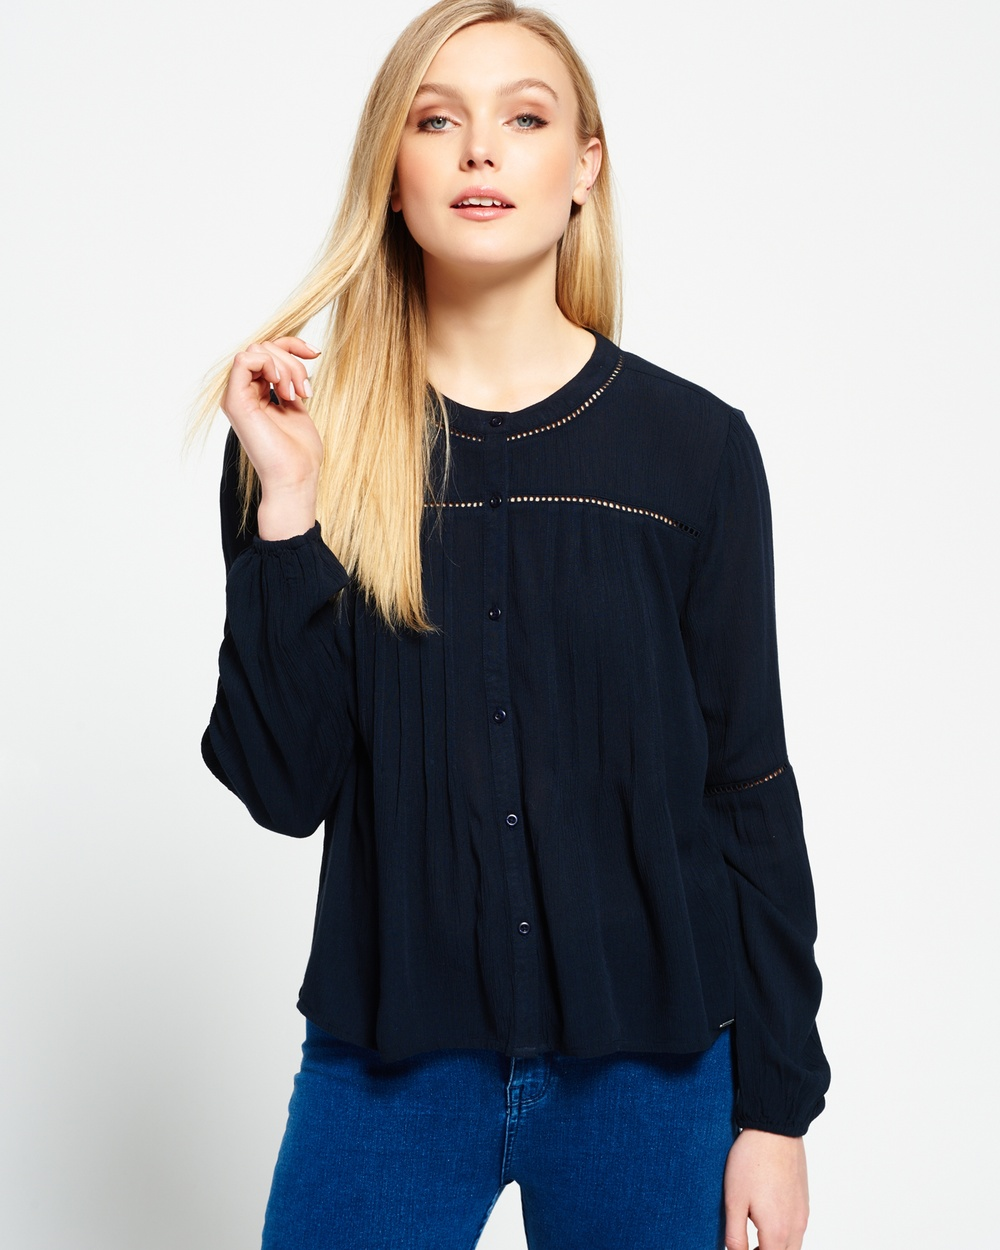 Photo of Superdry Superdry Maritime Ladder Blouse Tops Eclipse Navy Maritime Ladder Blouse - Superdry women's Maritime ladder blouse. This delicate long-sleeved blouse features a button down fastening, elasticated cuffs, lace ladder panels on the sleeves, collar and horizontal across the chest. The Maritime ladder blouse is finished with a subtle metal Superdry logo above the hem Model wears: Small Model height: 5'11